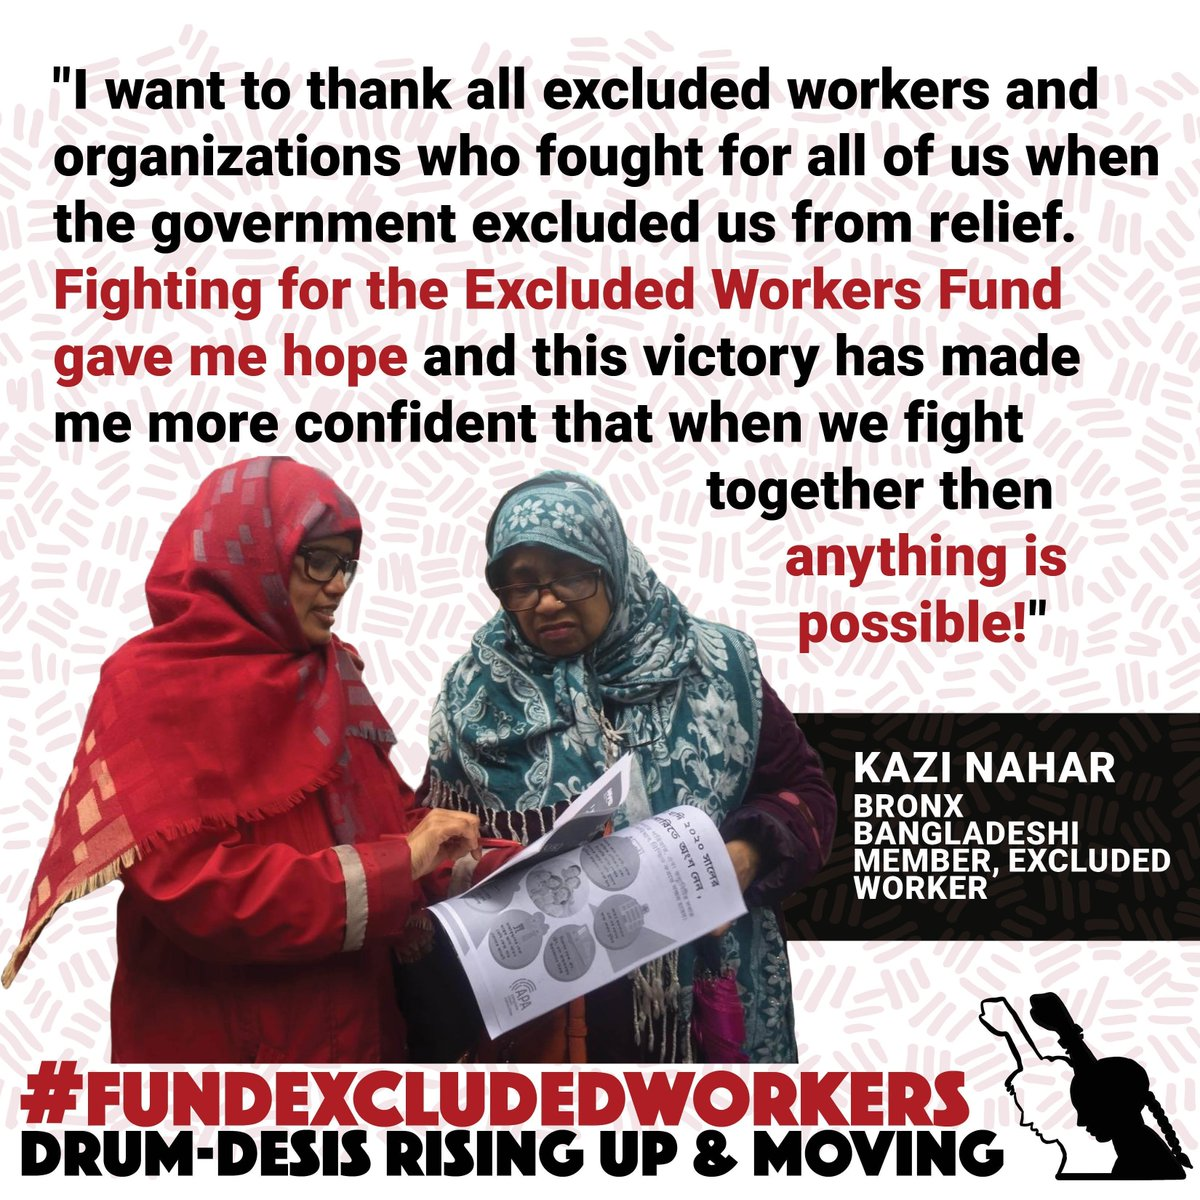 When we fight together then anything is possible! @DesisRisingUps Bronx member Kazi Nahar reflecting on organizing for + winning the #FundExcludedWorkers campaign. This is a big win we celebrate with all working class + excluded workers + orgs. Heres to us #BuildingPower!!